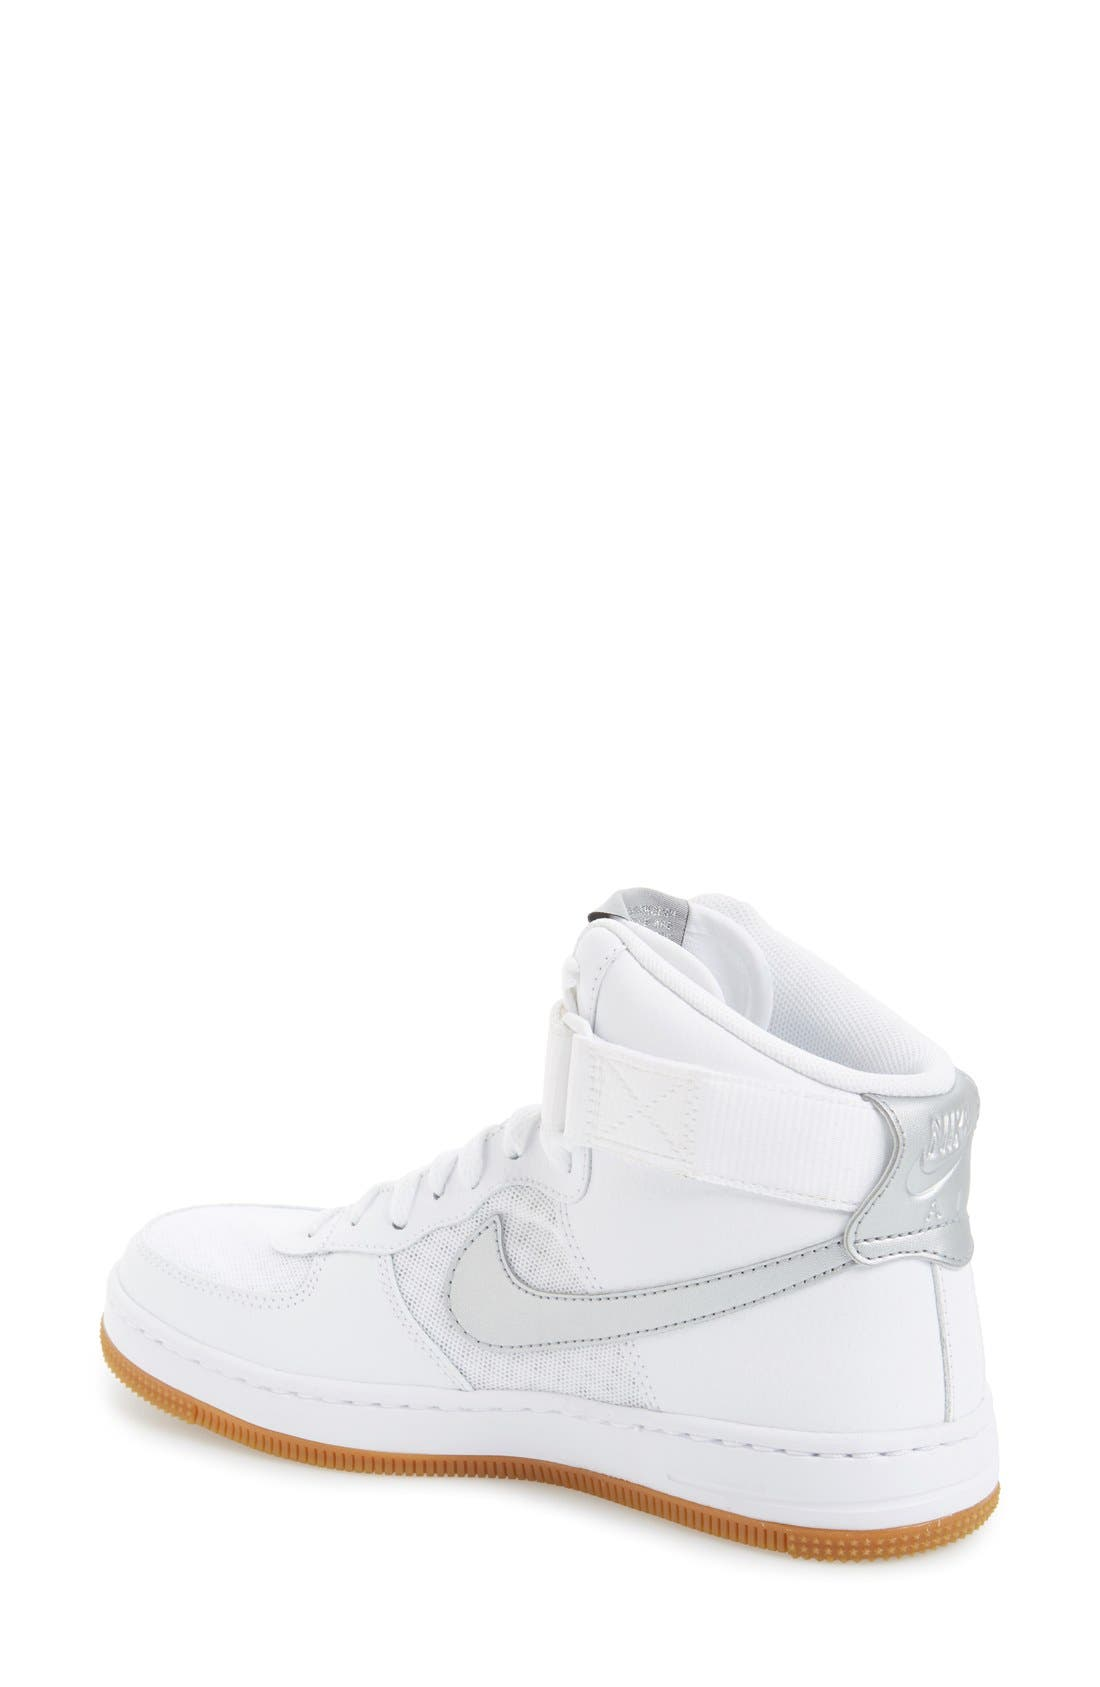 Alternate Image 2  - Nike 'AF-1 Ultra Force Mid' High Top Sneaker (Women)